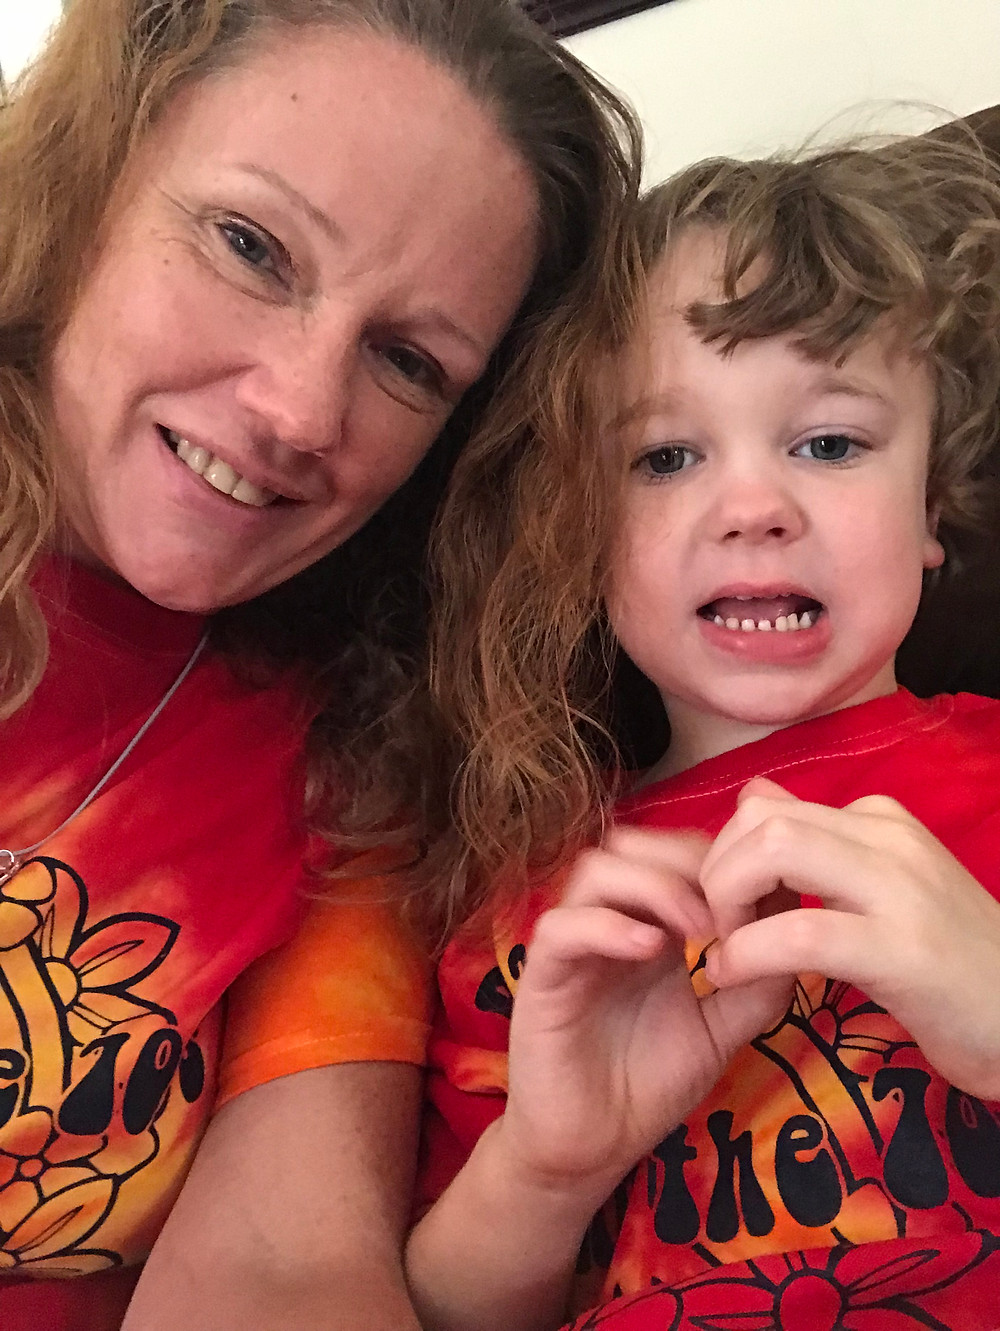 Micah and his mom are matching quite nicely in this picture. #TeamMicah